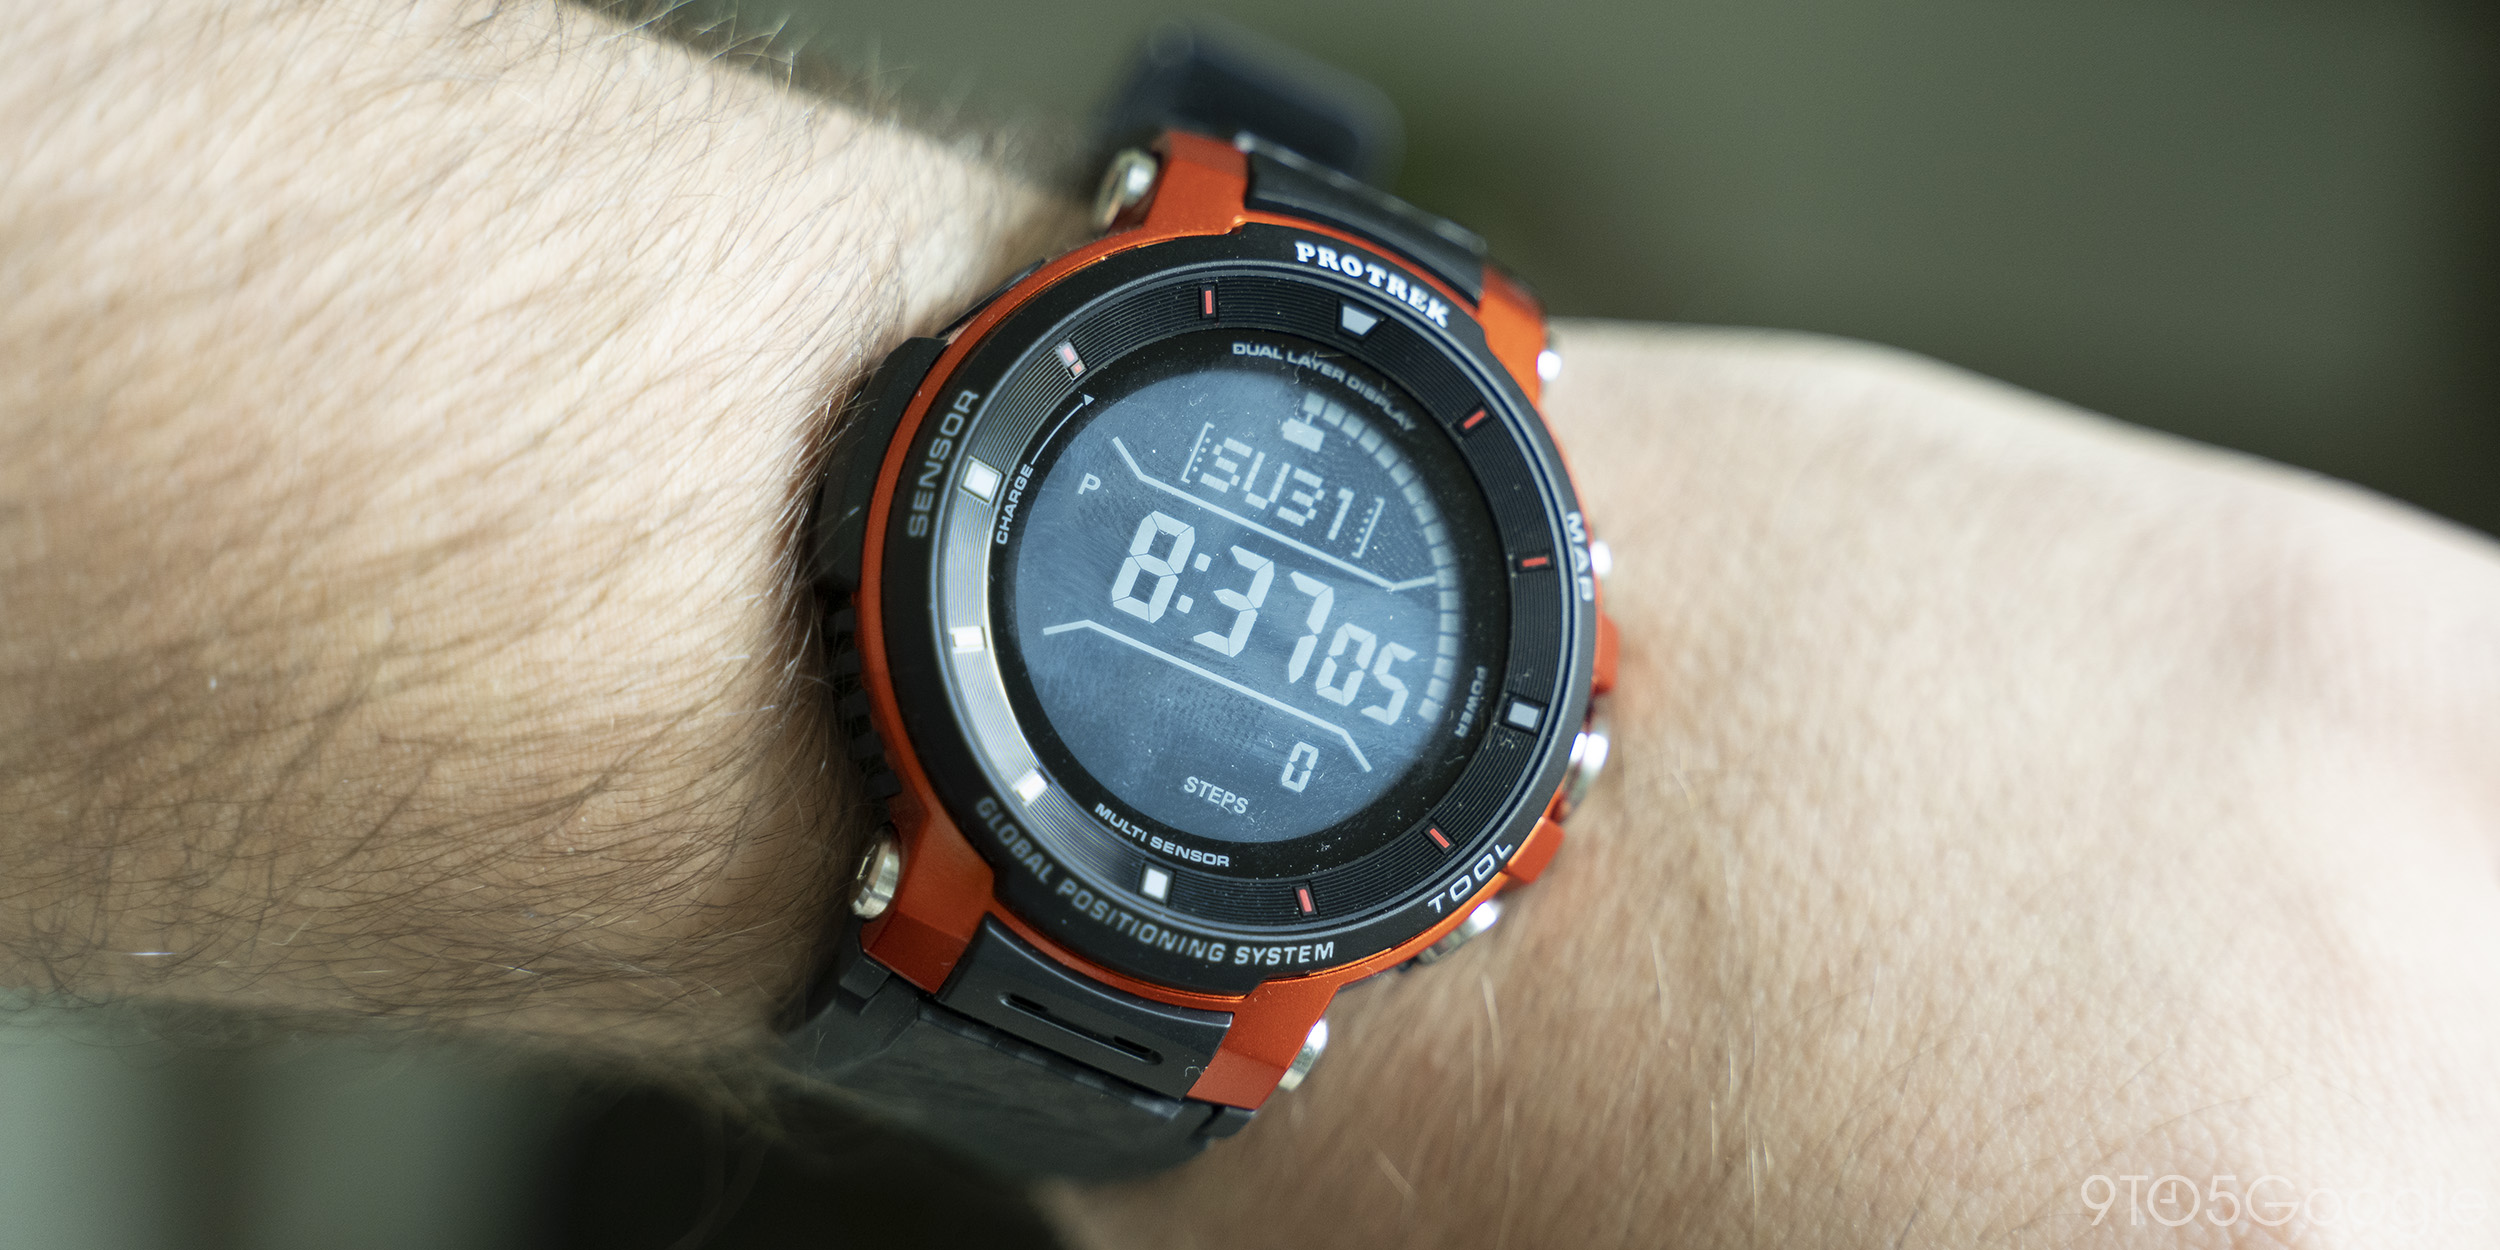 e67d53a04 Best Android Smartwatches: Wear OS, Samsung, more - 9to5Google